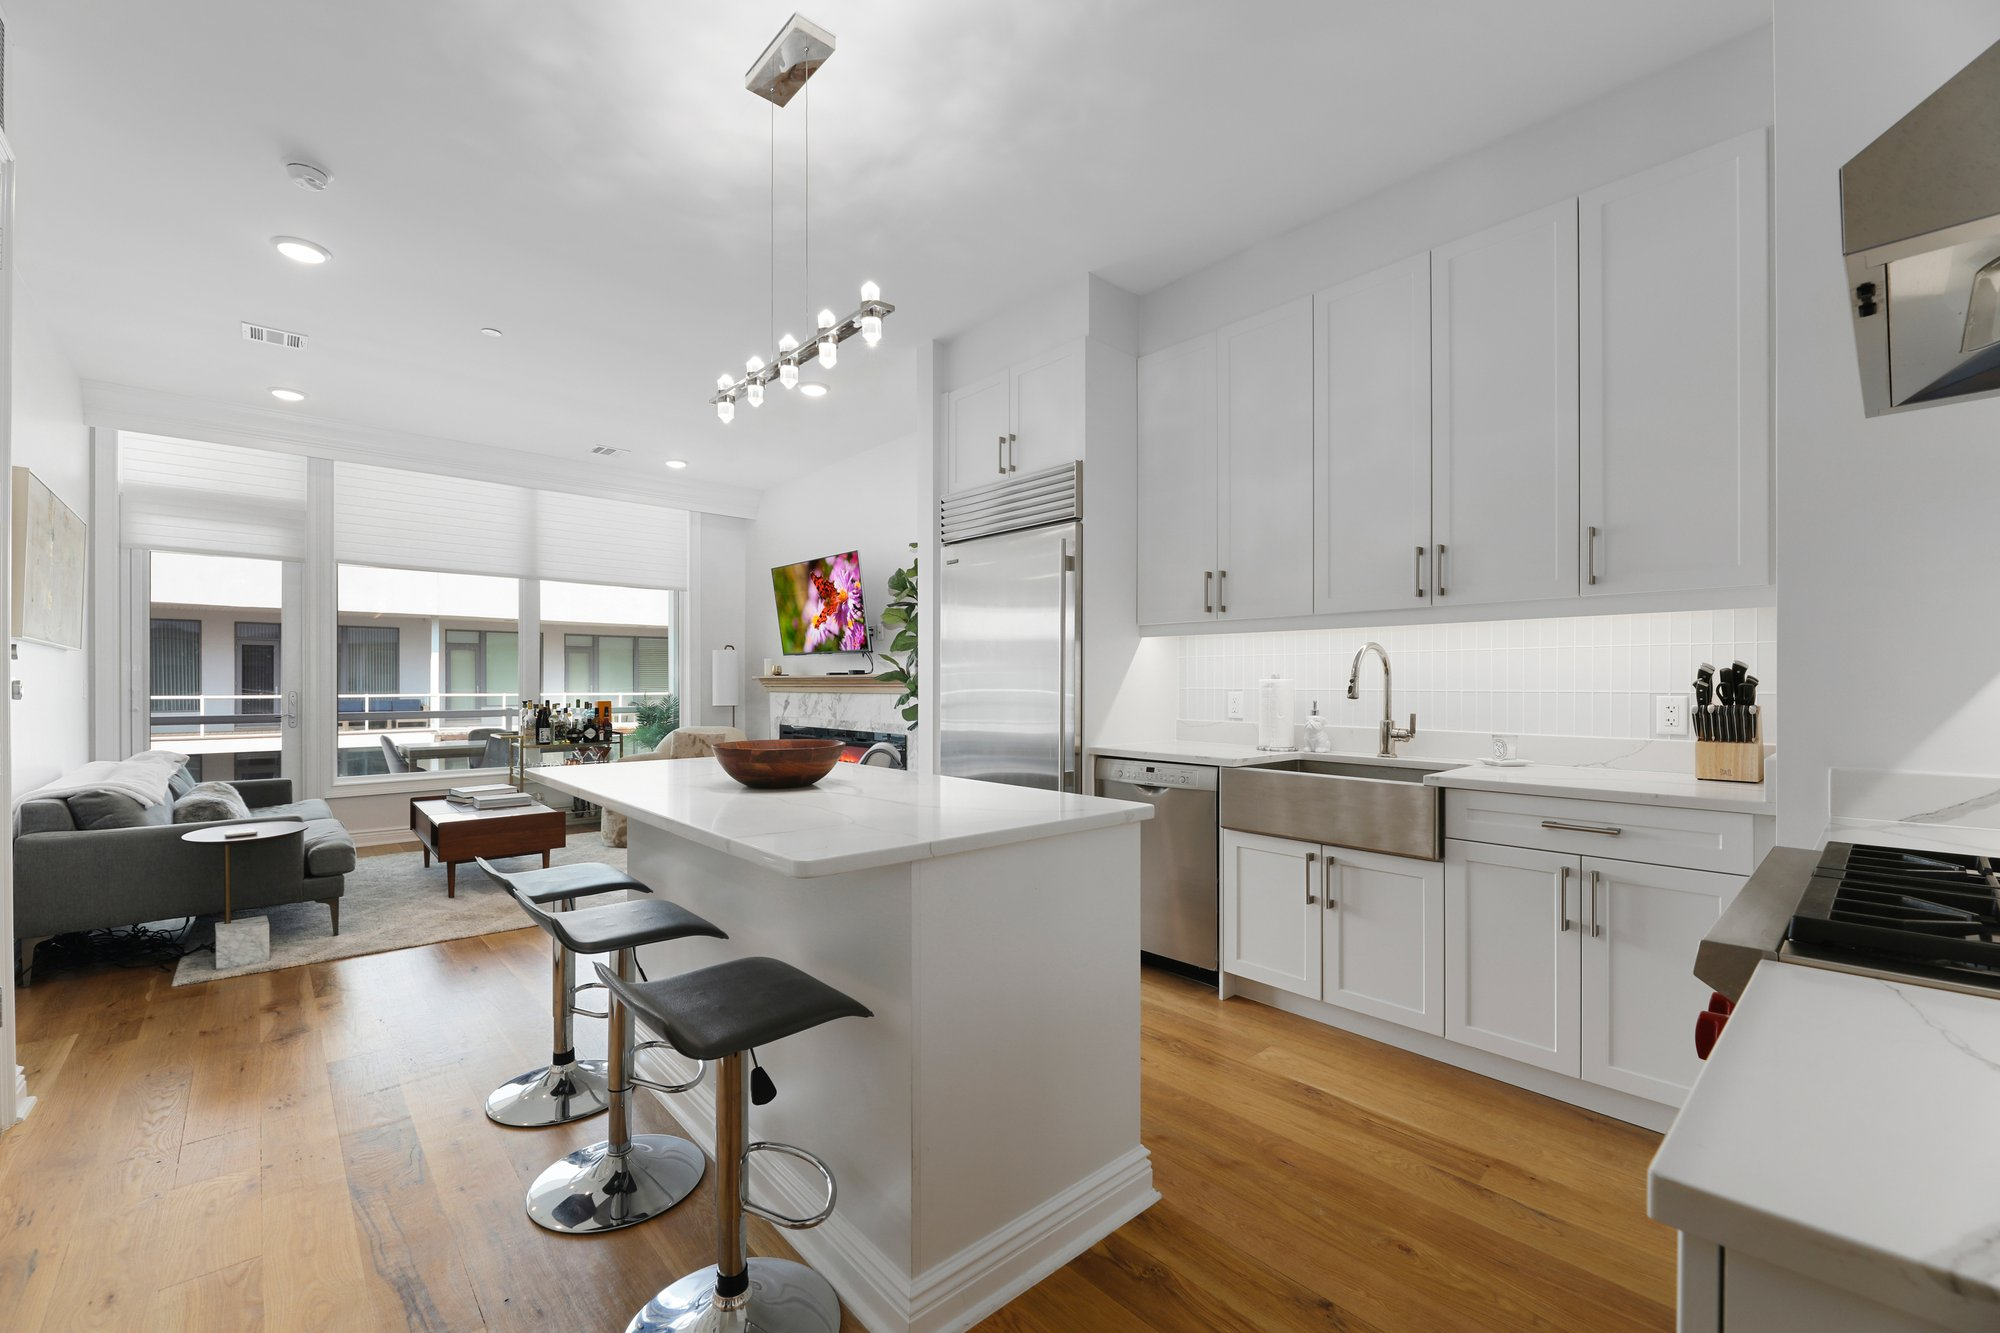 Condo in Edgewater, New Jersey, United States 1 - 11568041